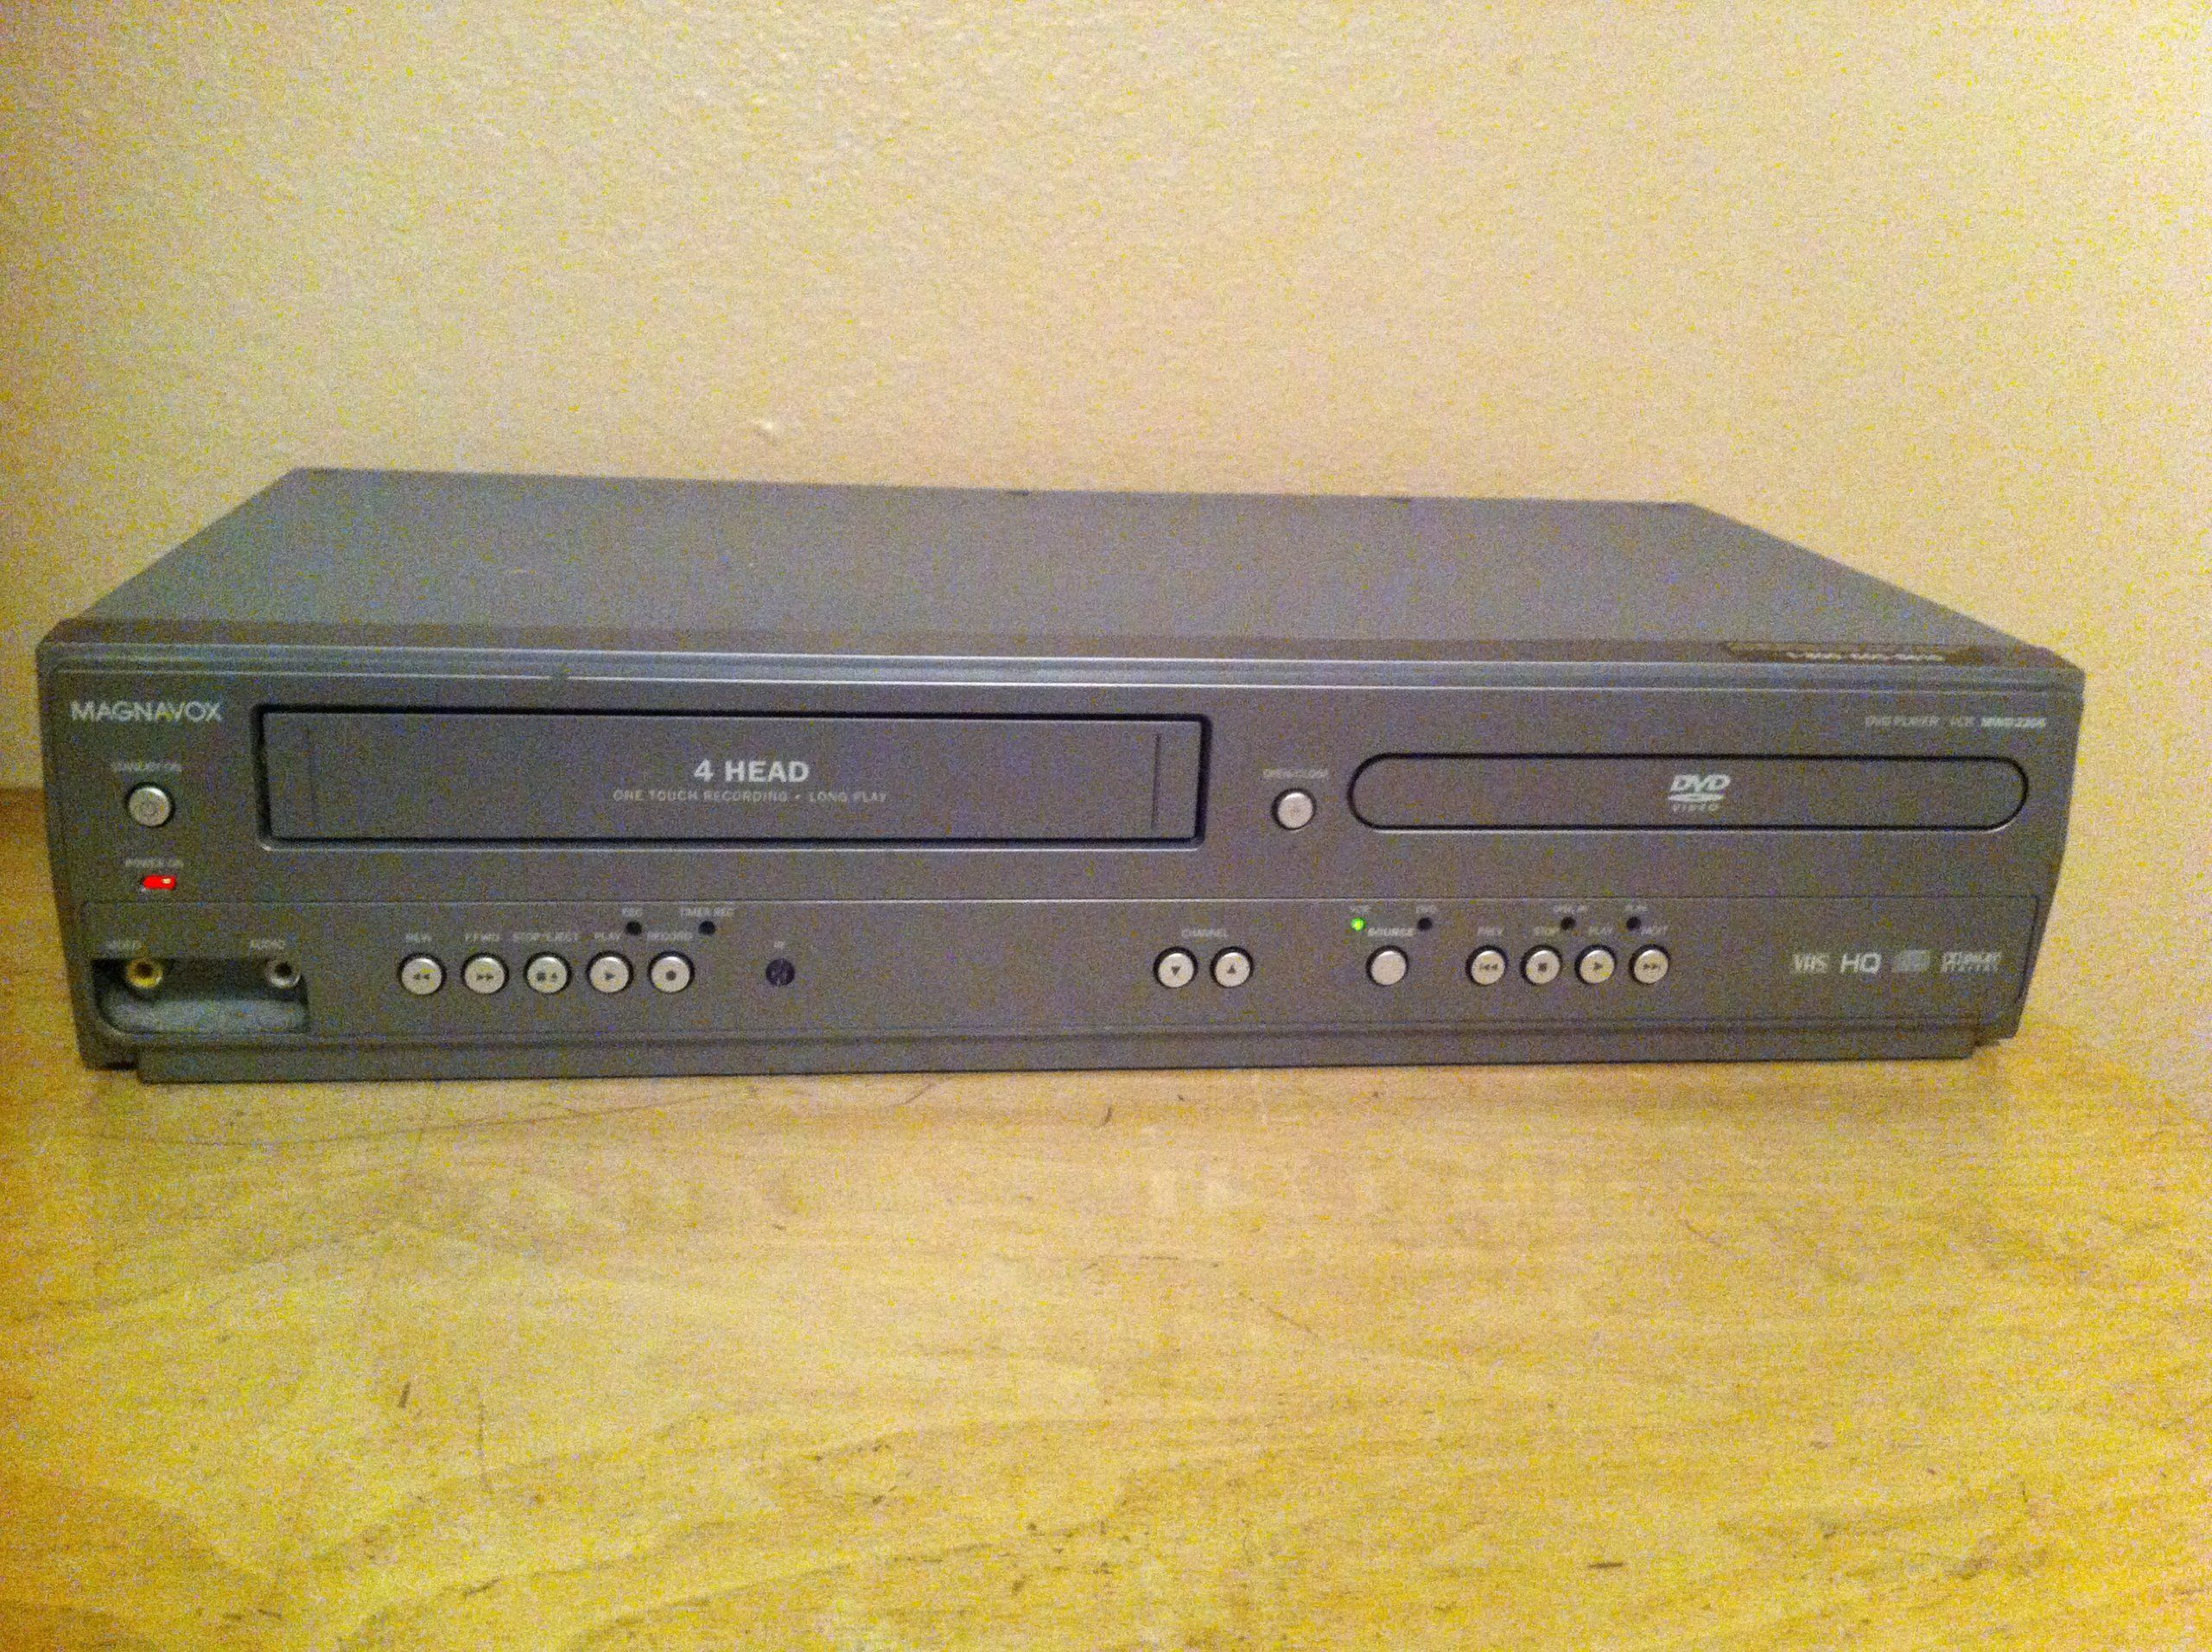 magnavox mwd2206 dvd vcr combination player dvdvcr combos pinterest rh pinterest com Kindle Fire User Guide Kindle Fire User Guide